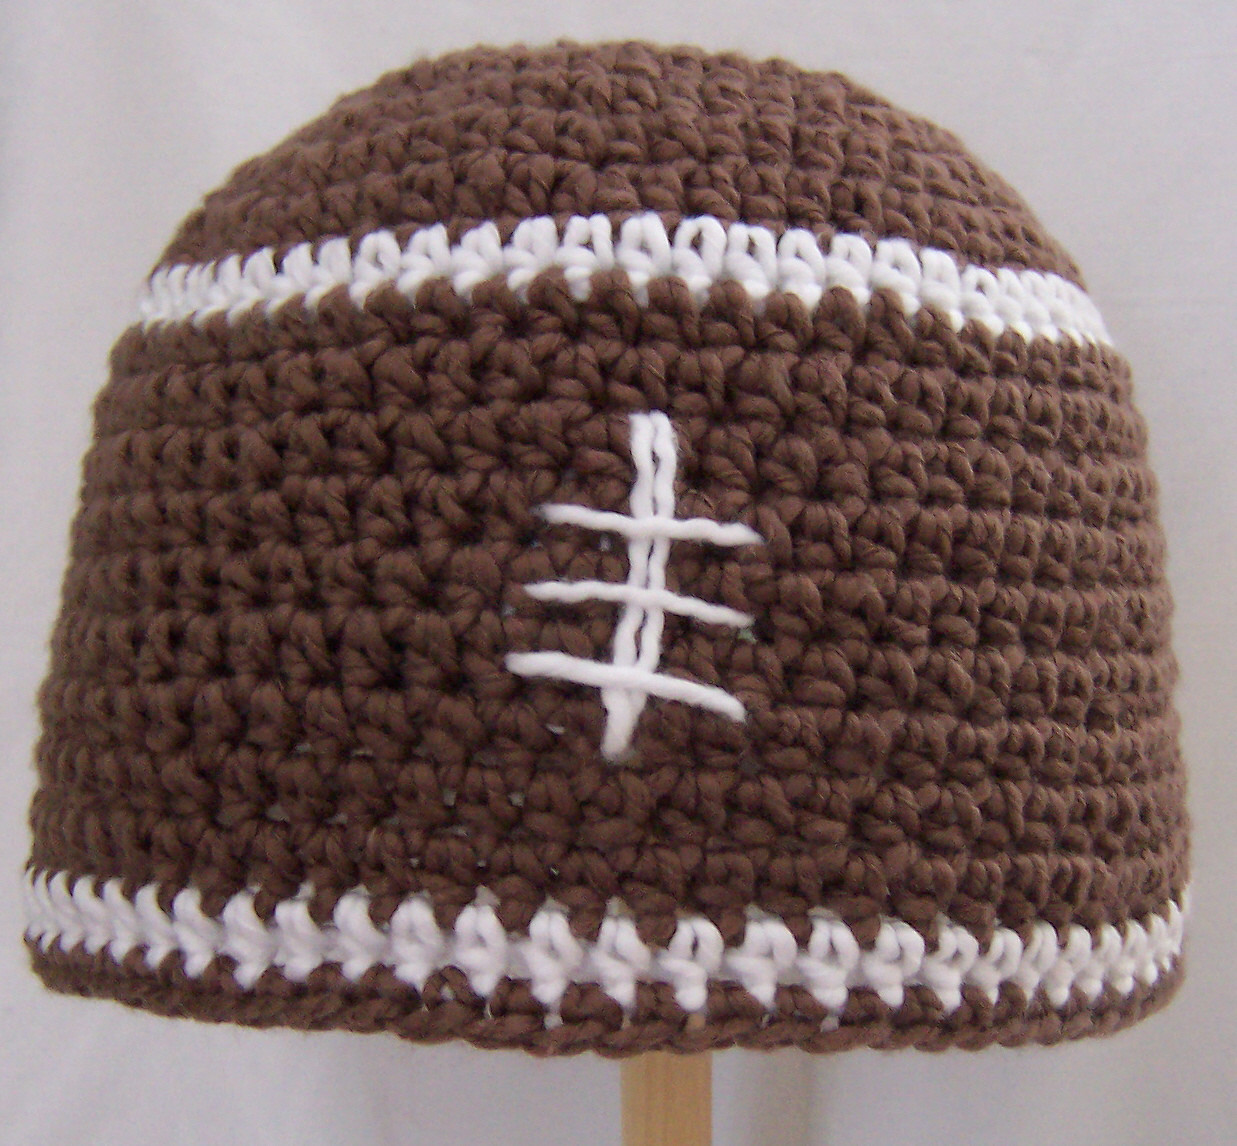 Free Chemo Hat Patterns New Free Crochet Patterns Free Crochet Pattern Football Of Contemporary 43 Images Free Chemo Hat Patterns